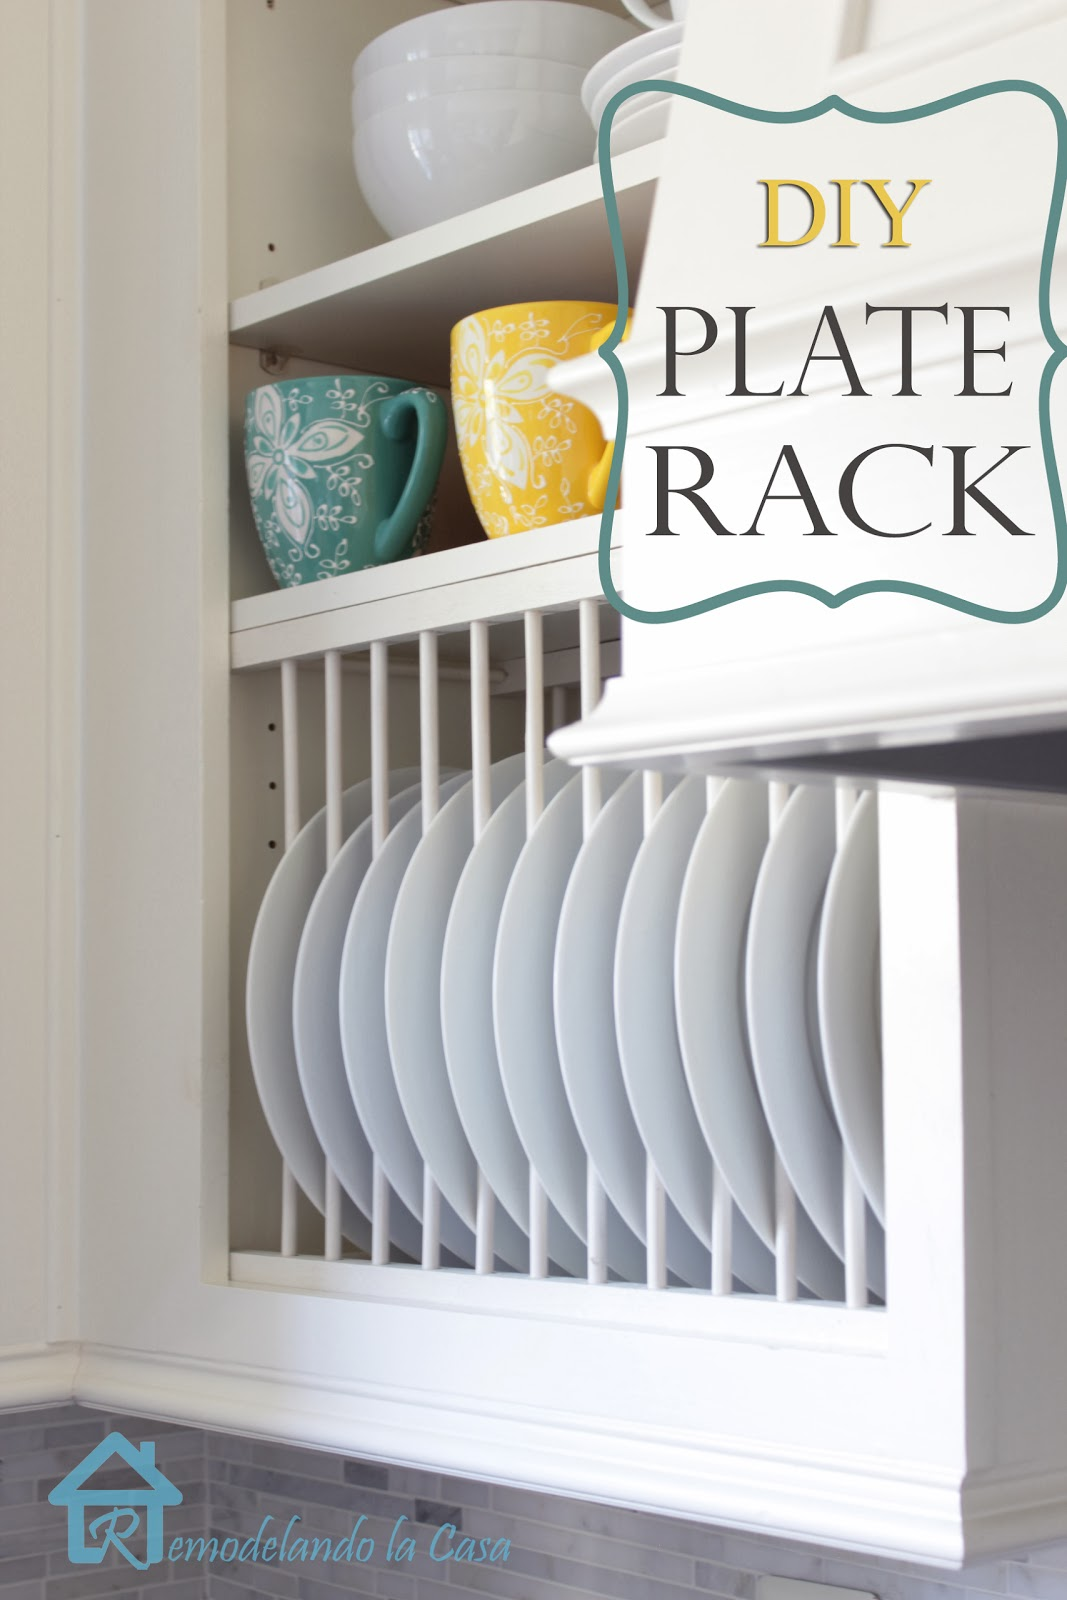 how to make a plate rack inside a cabinet